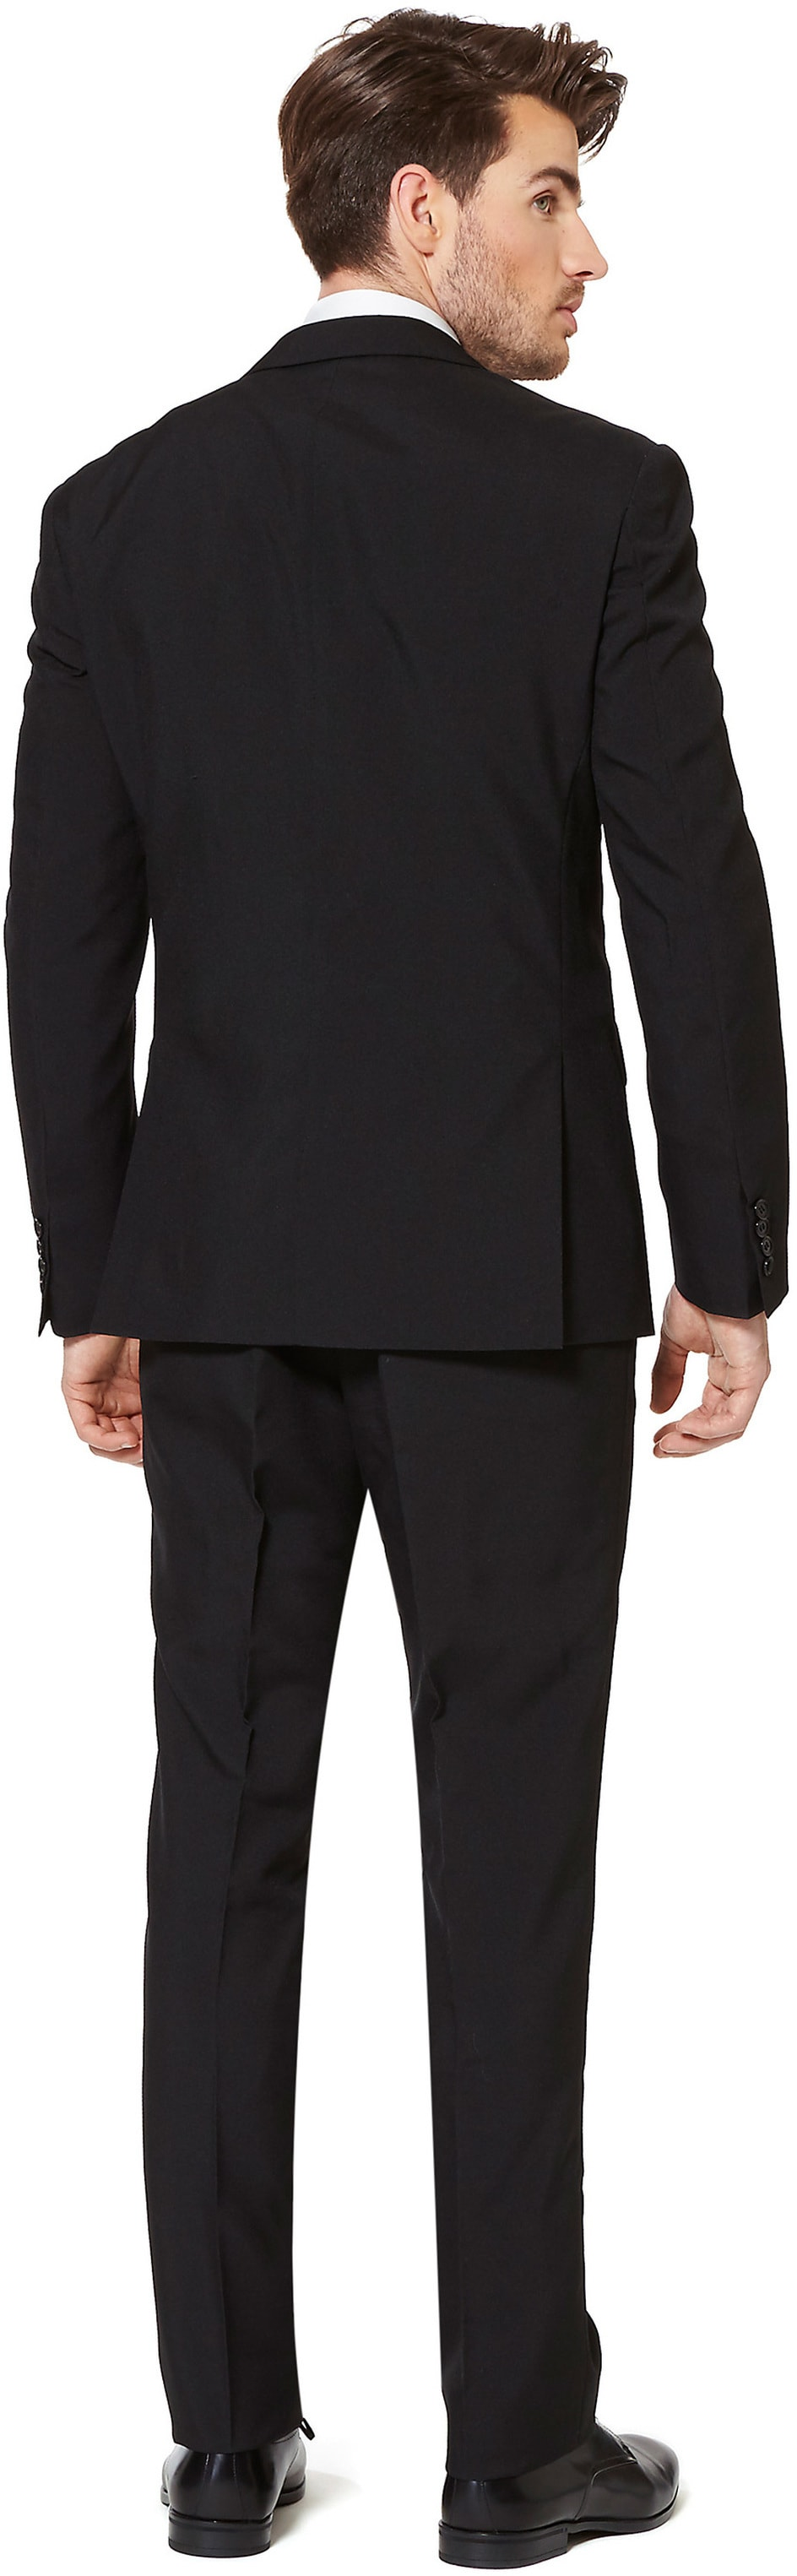 OppoSuits Black Knight Suit foto 1